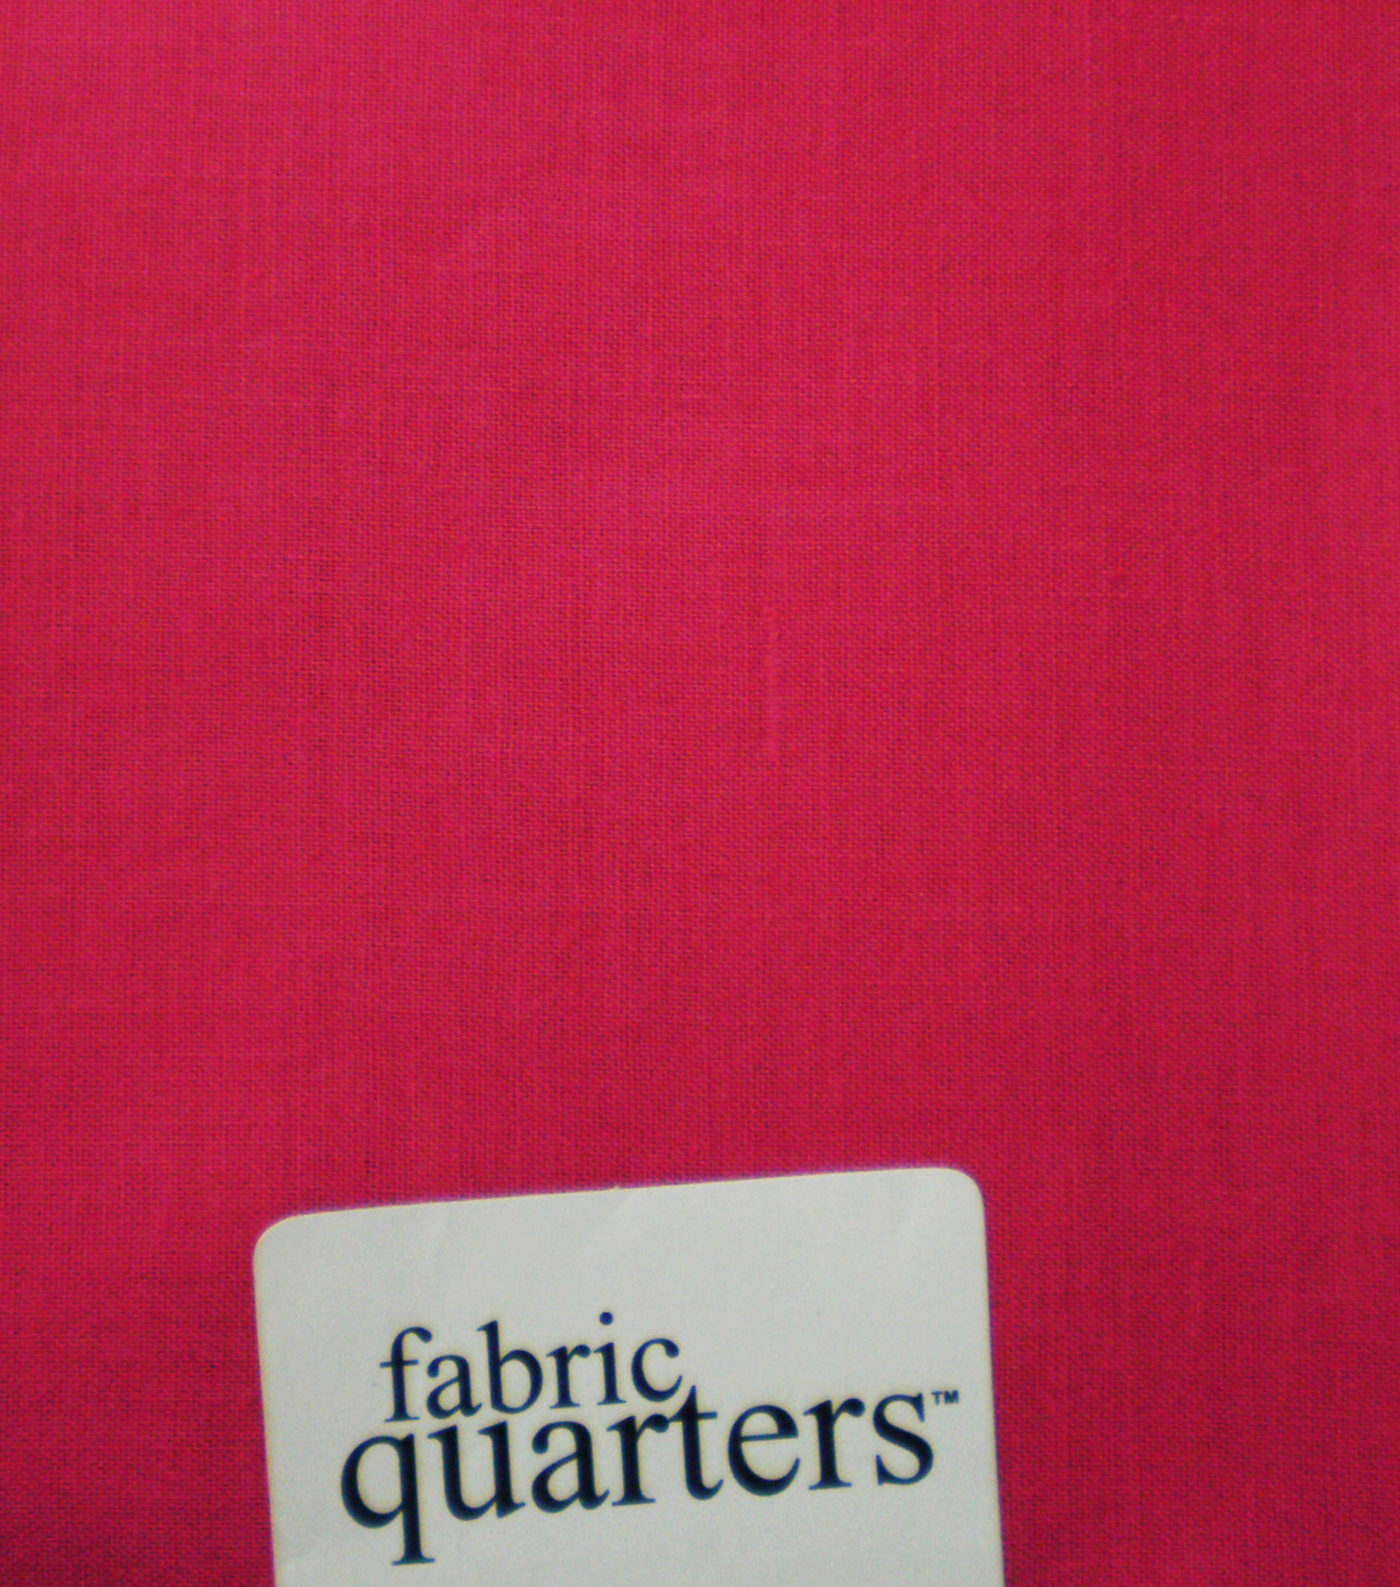 Fabric-Quarters Cotton Fabric-Solids Dark Pink